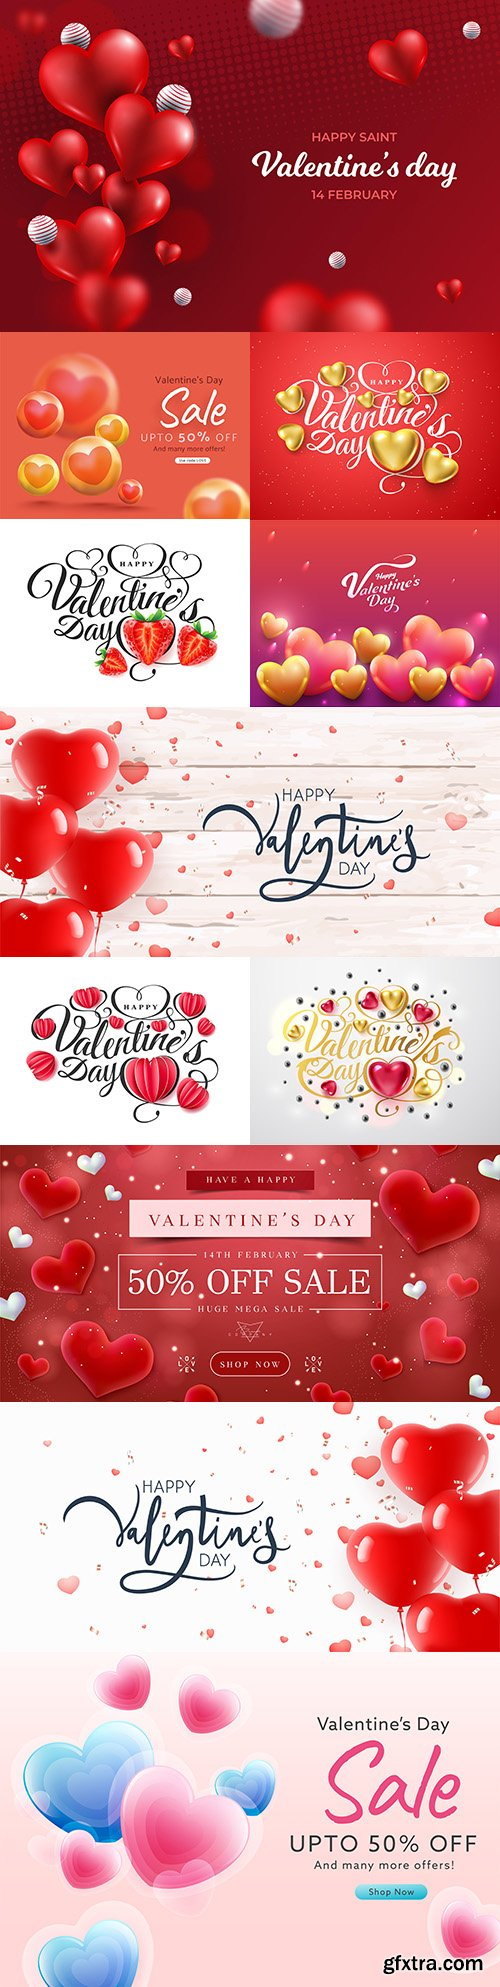 Happy Valentine's Day illustrations with heart-shaped balloons